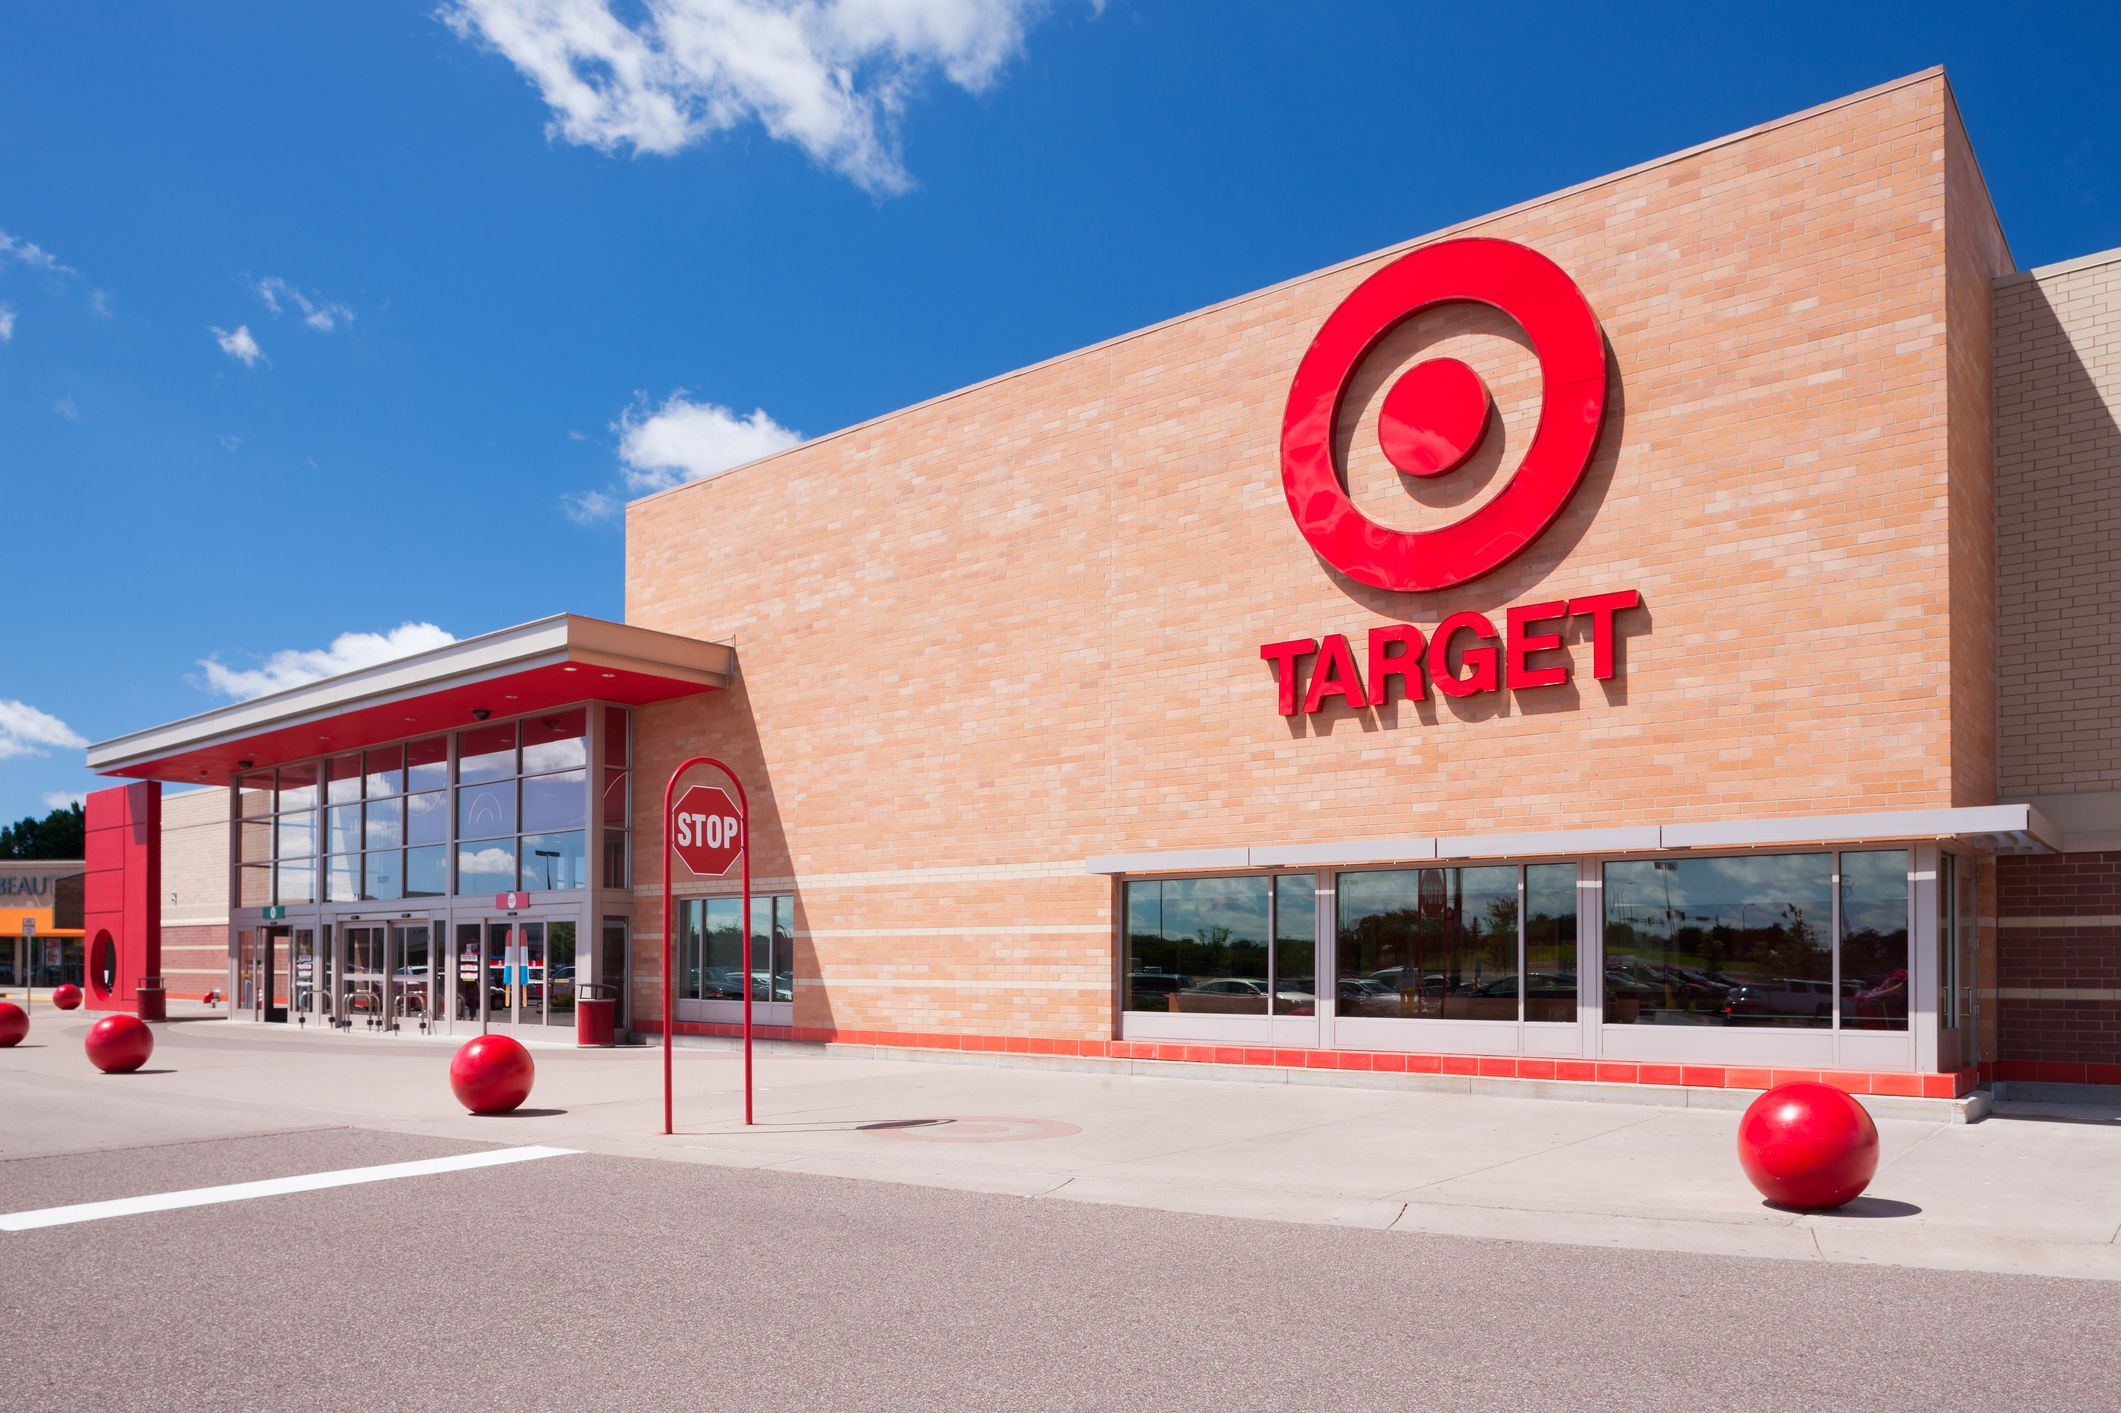 Is Target Open on Easter 2020? - Target Easter Hours